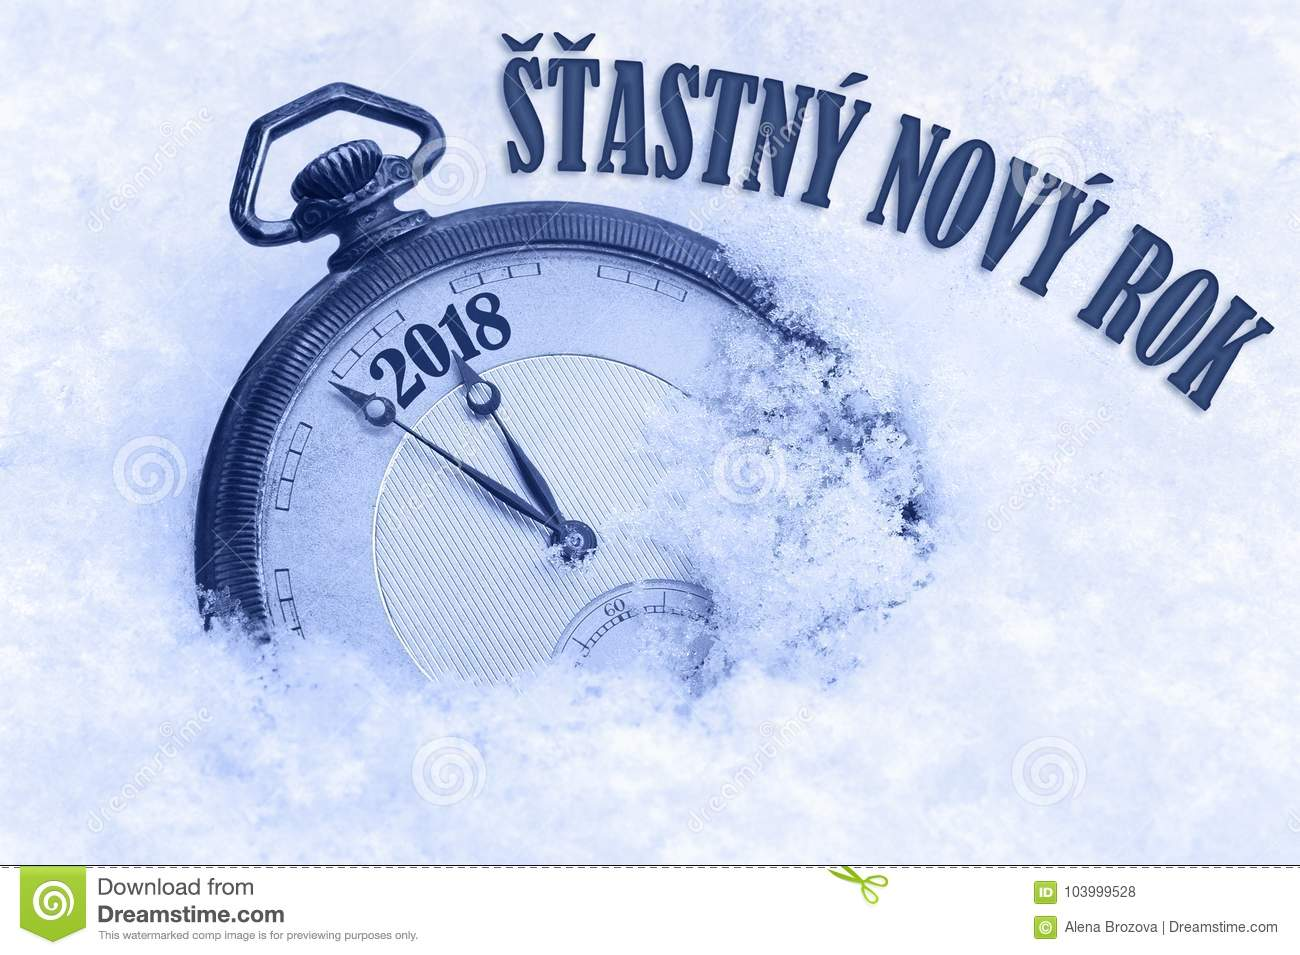 Happy New Year 2018 Greeting In Czech Language Stastny Novy Rok